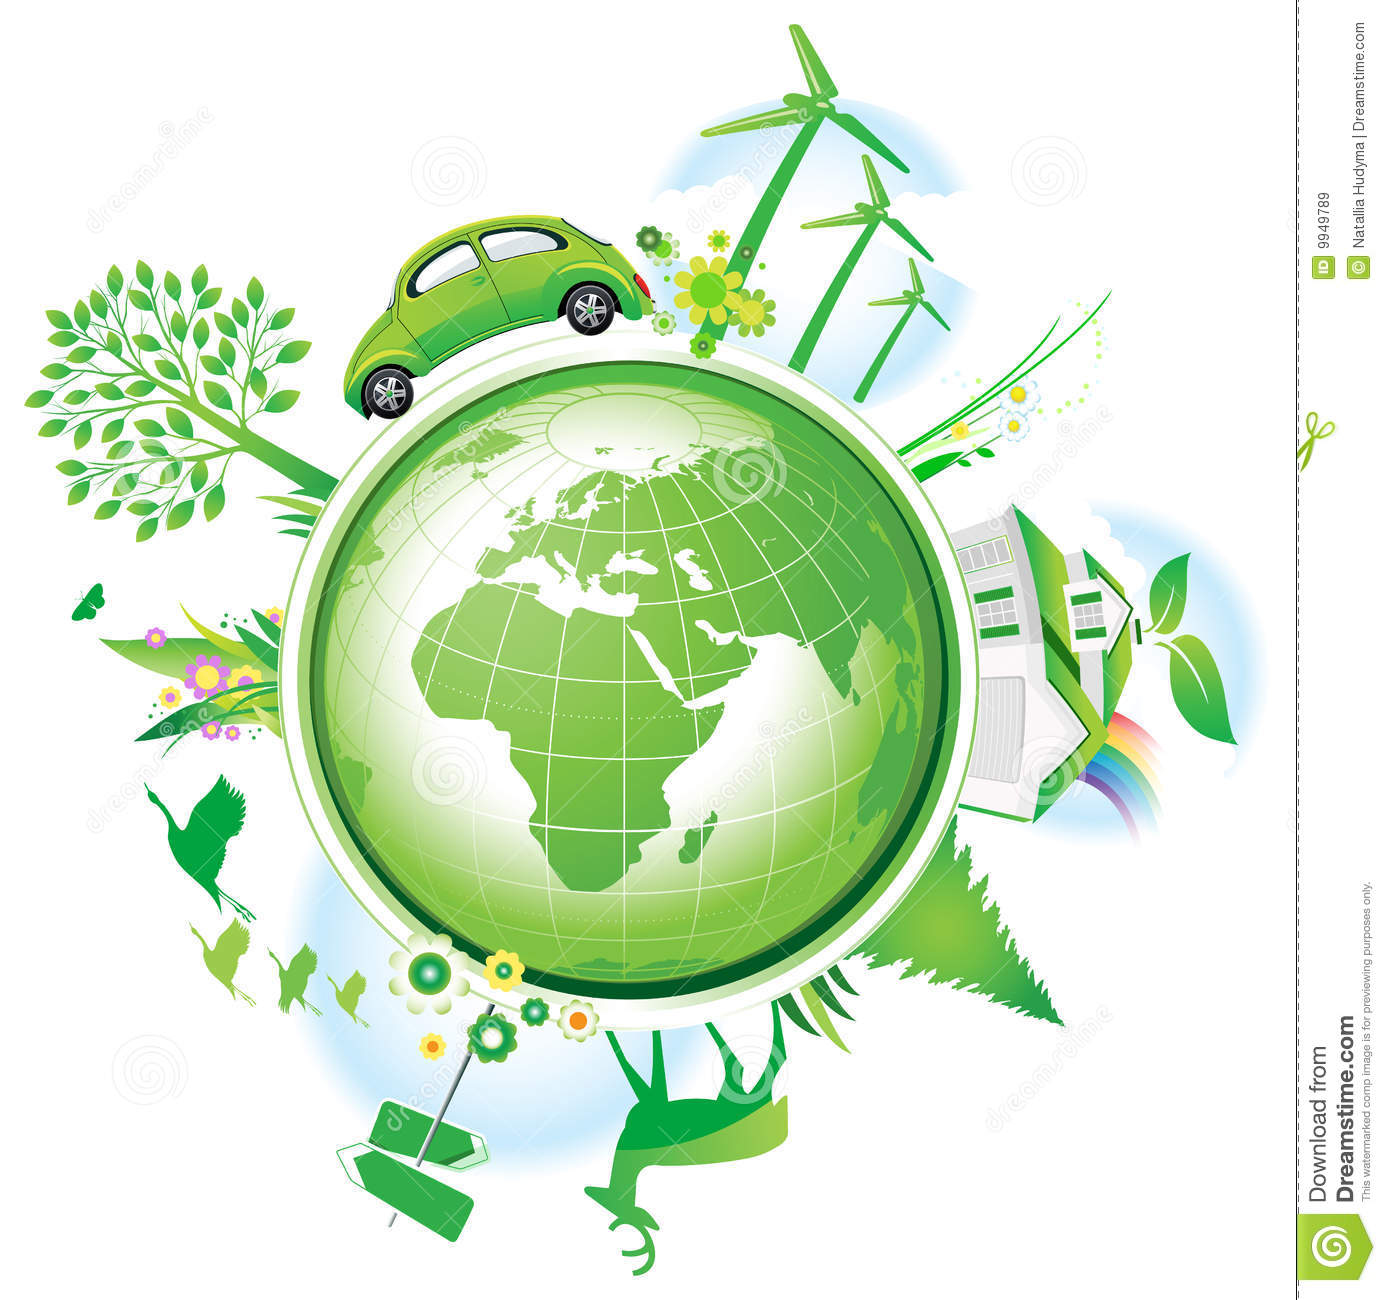 Energy clipart energy efficiency Energy Clipart Conservation Conservation Download